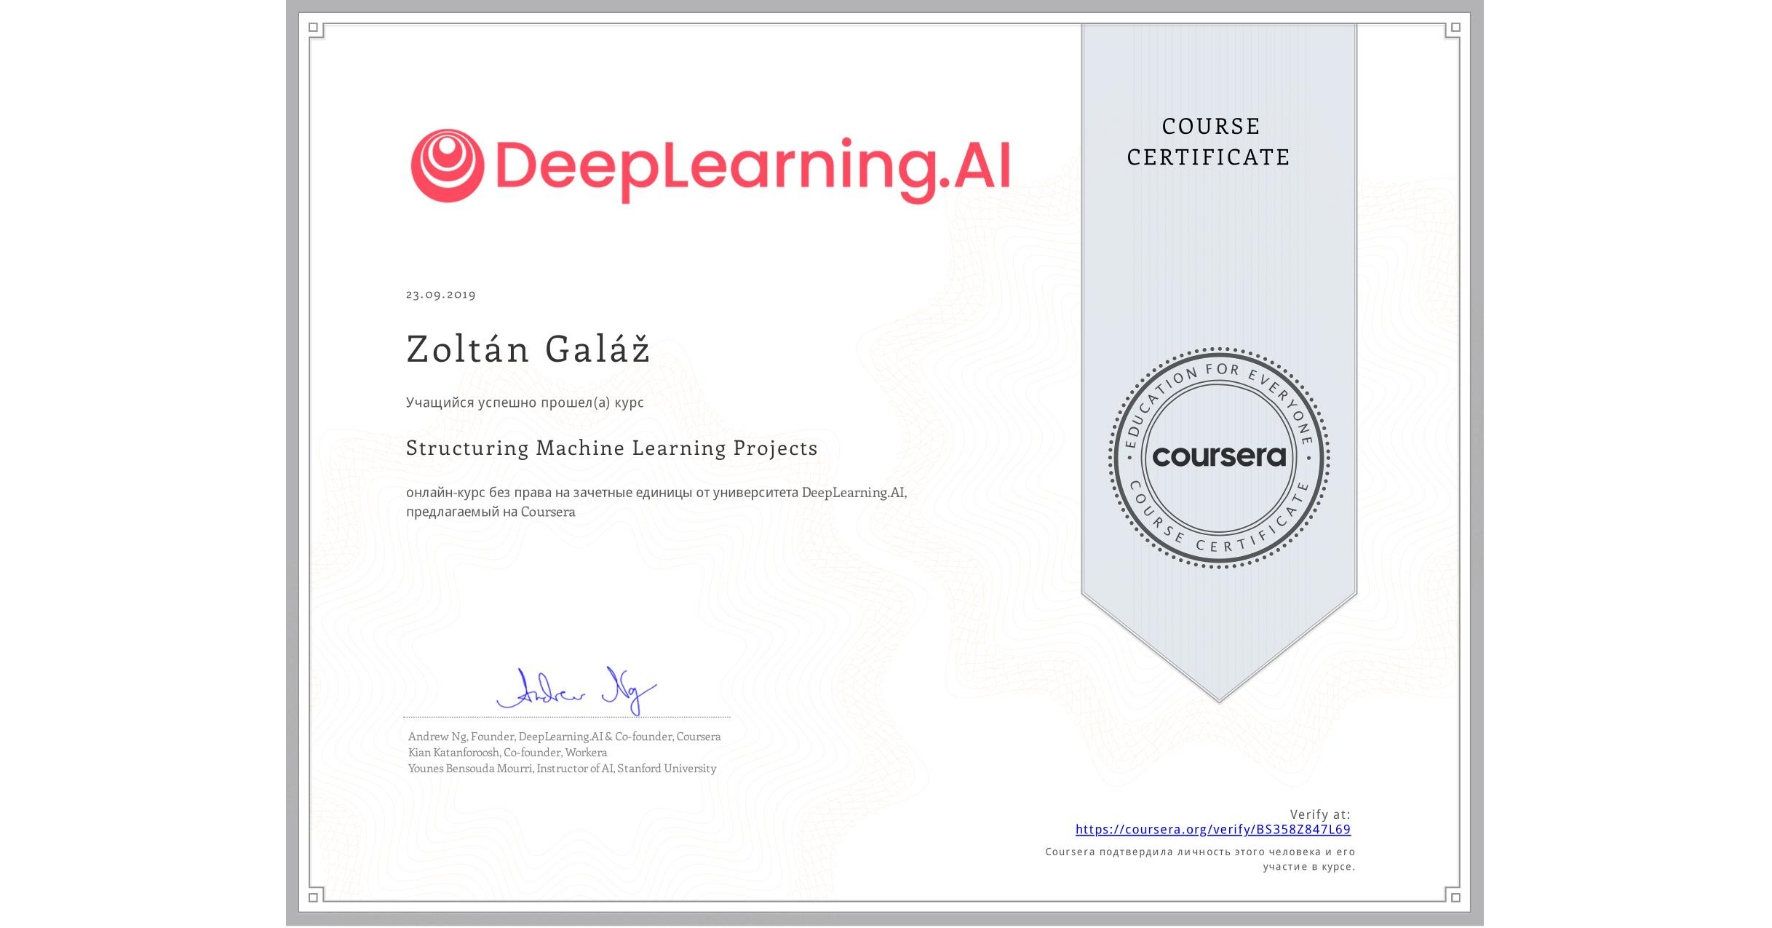 View certificate for Zoltán Galáž, Structuring Machine Learning Projects, an online non-credit course authorized by DeepLearning.AI and offered through Coursera